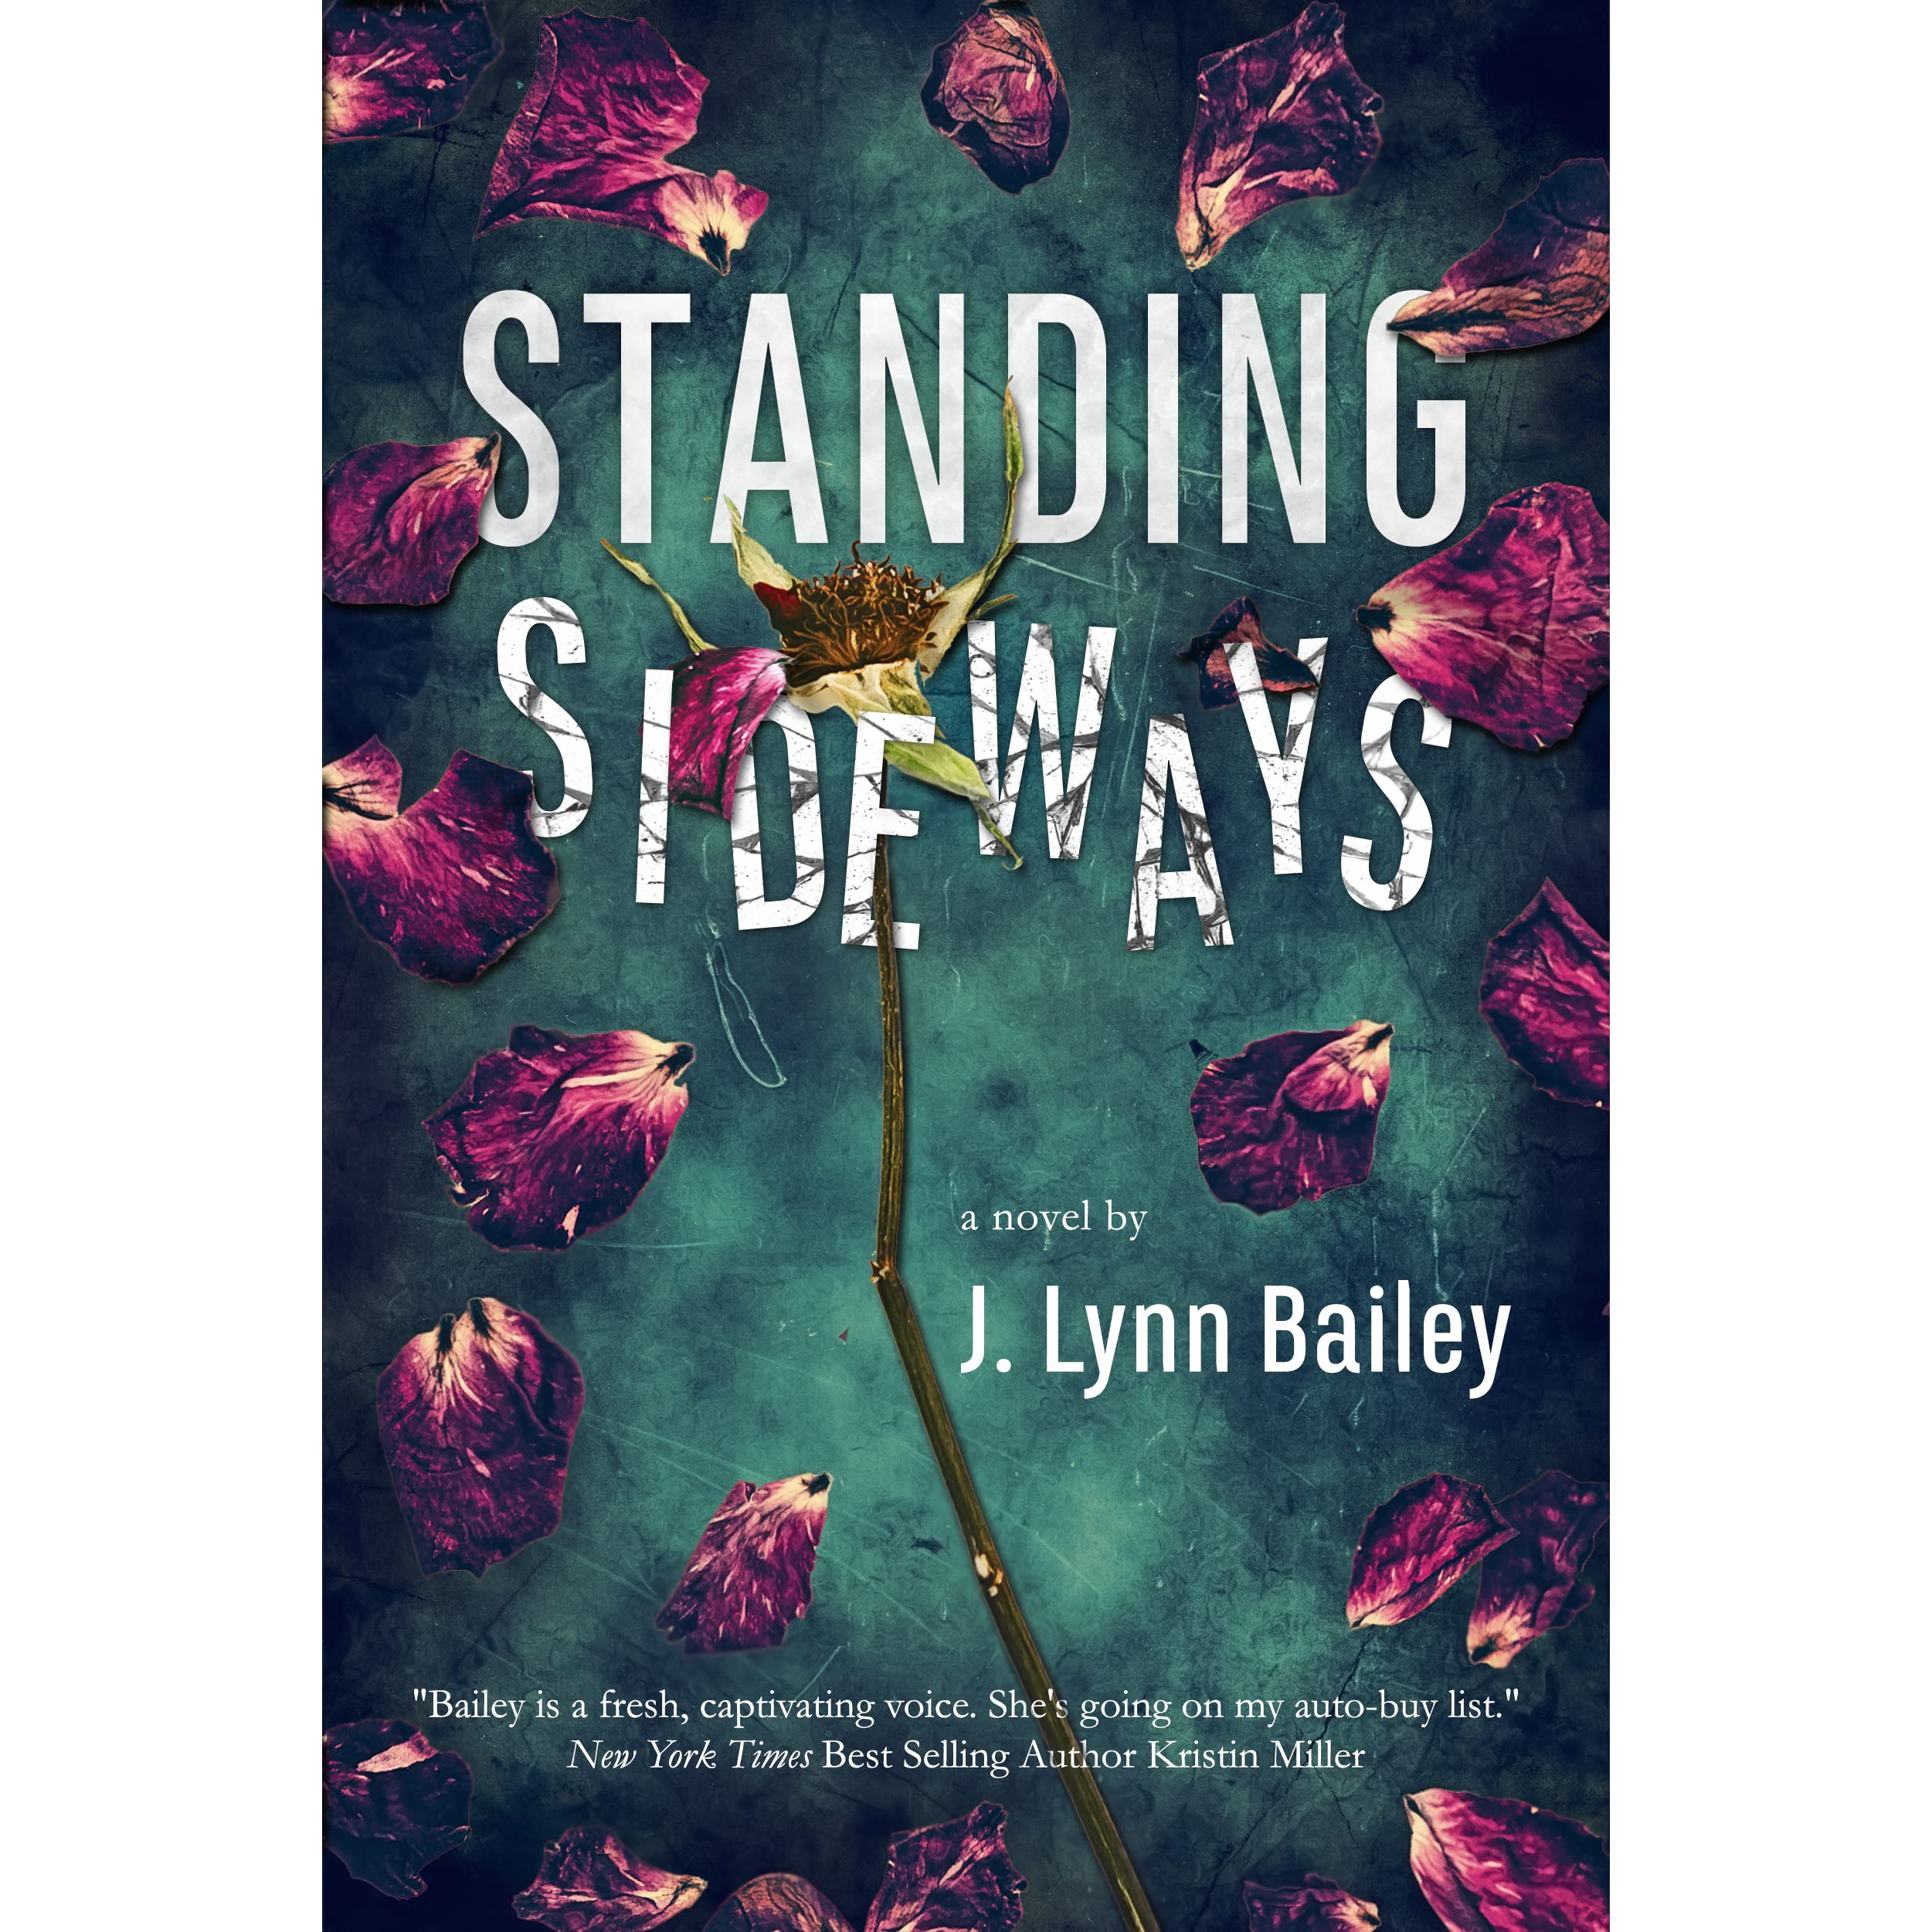 Image result for standing sideways j lynn bailey